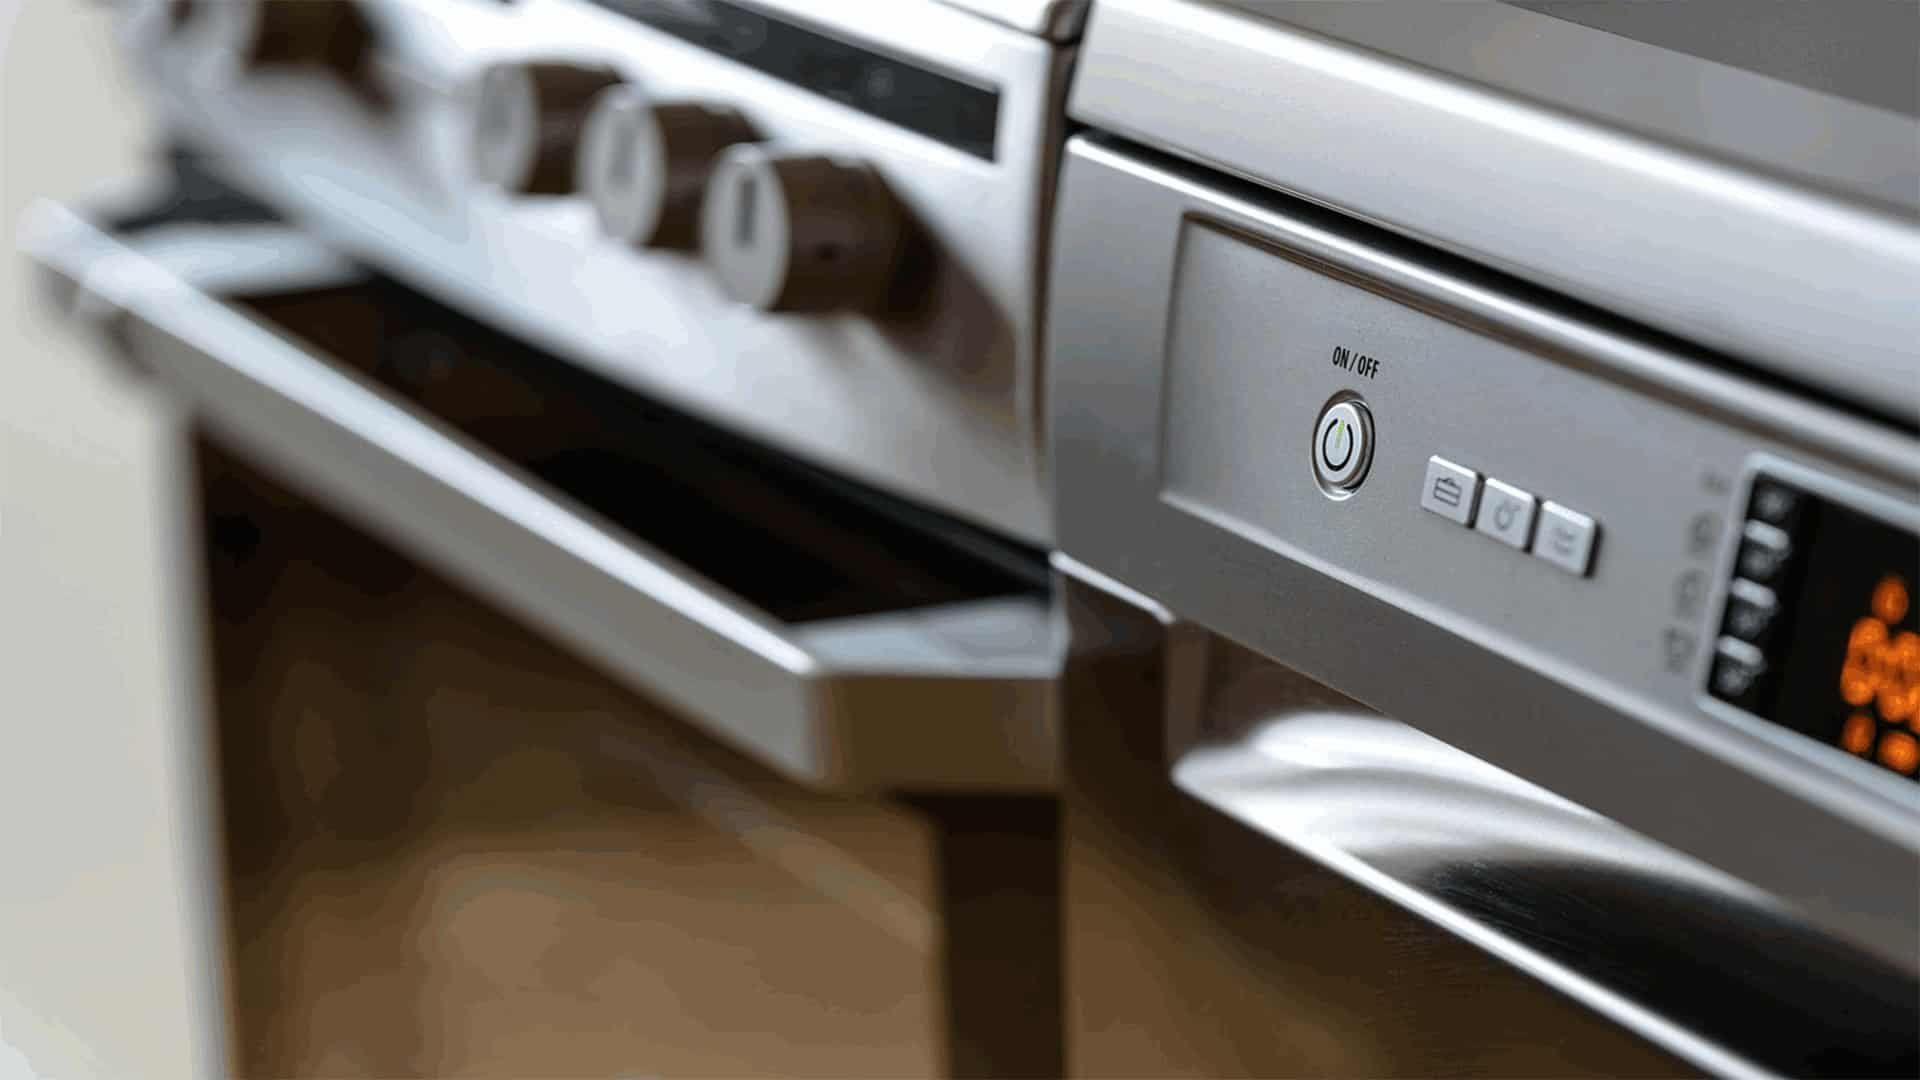 Commercial Cooktop, commercial stove, commercial oven